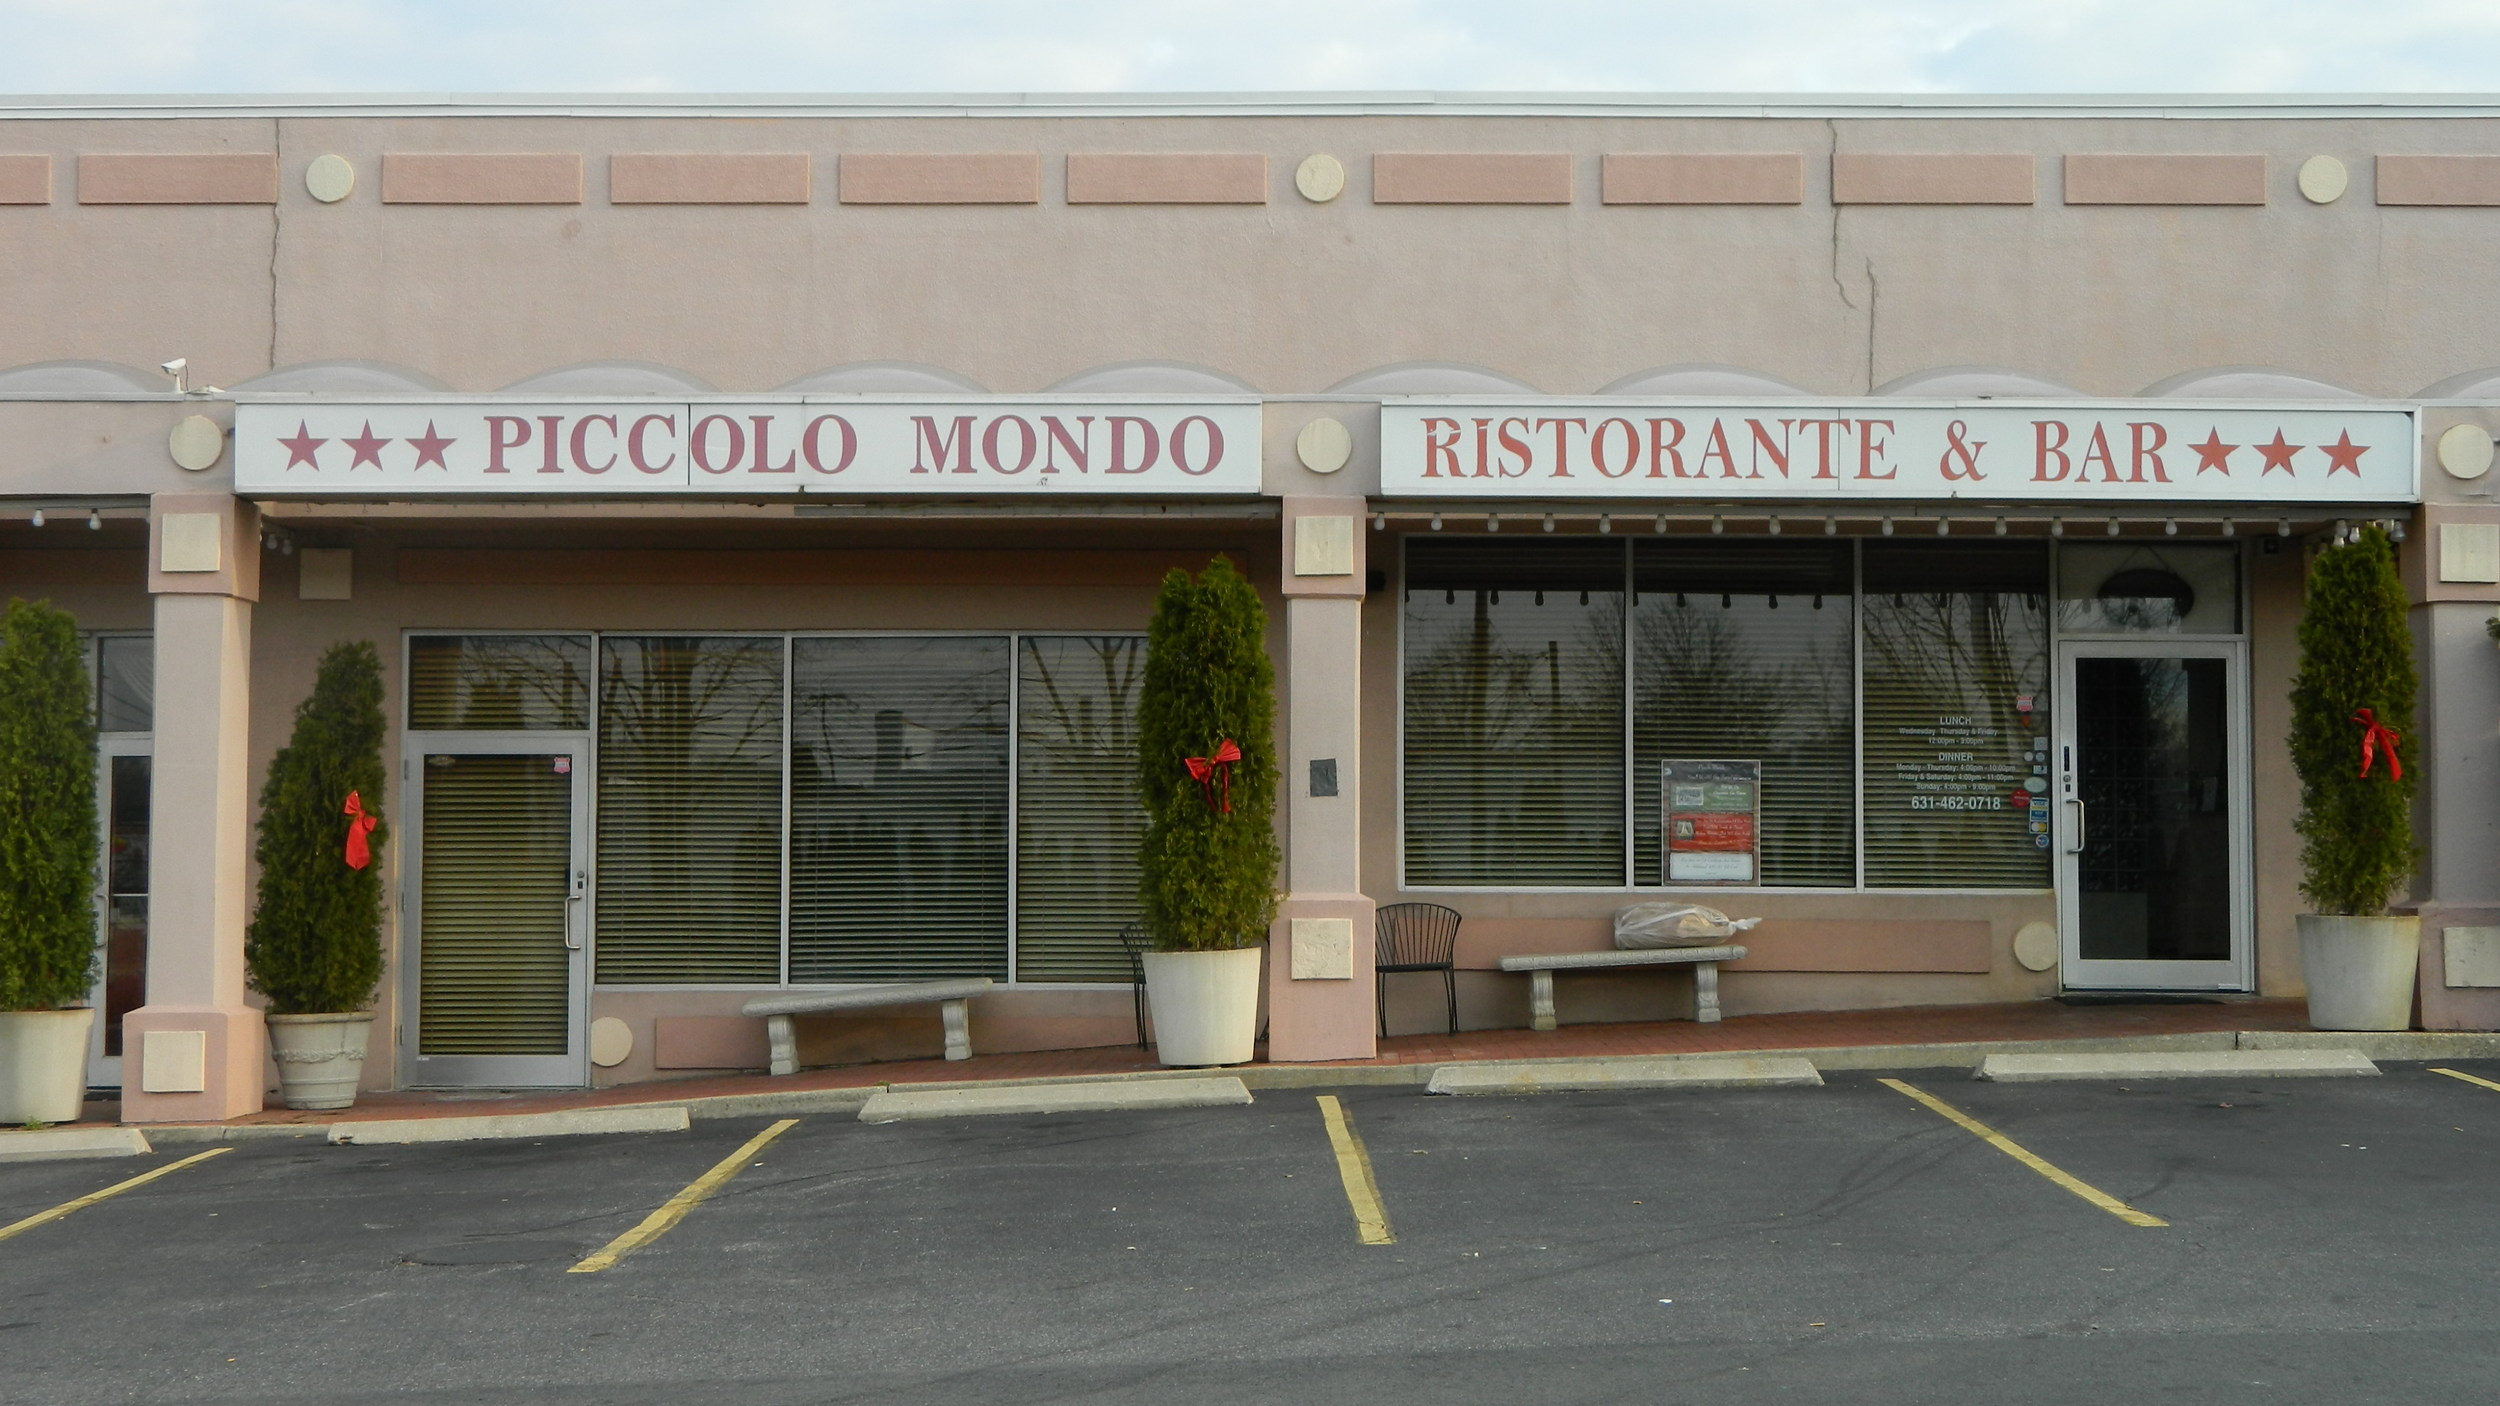 Piccolo Mondo is tucked in a shopping plaza between Maddaloni Jewelers and a nail salon.